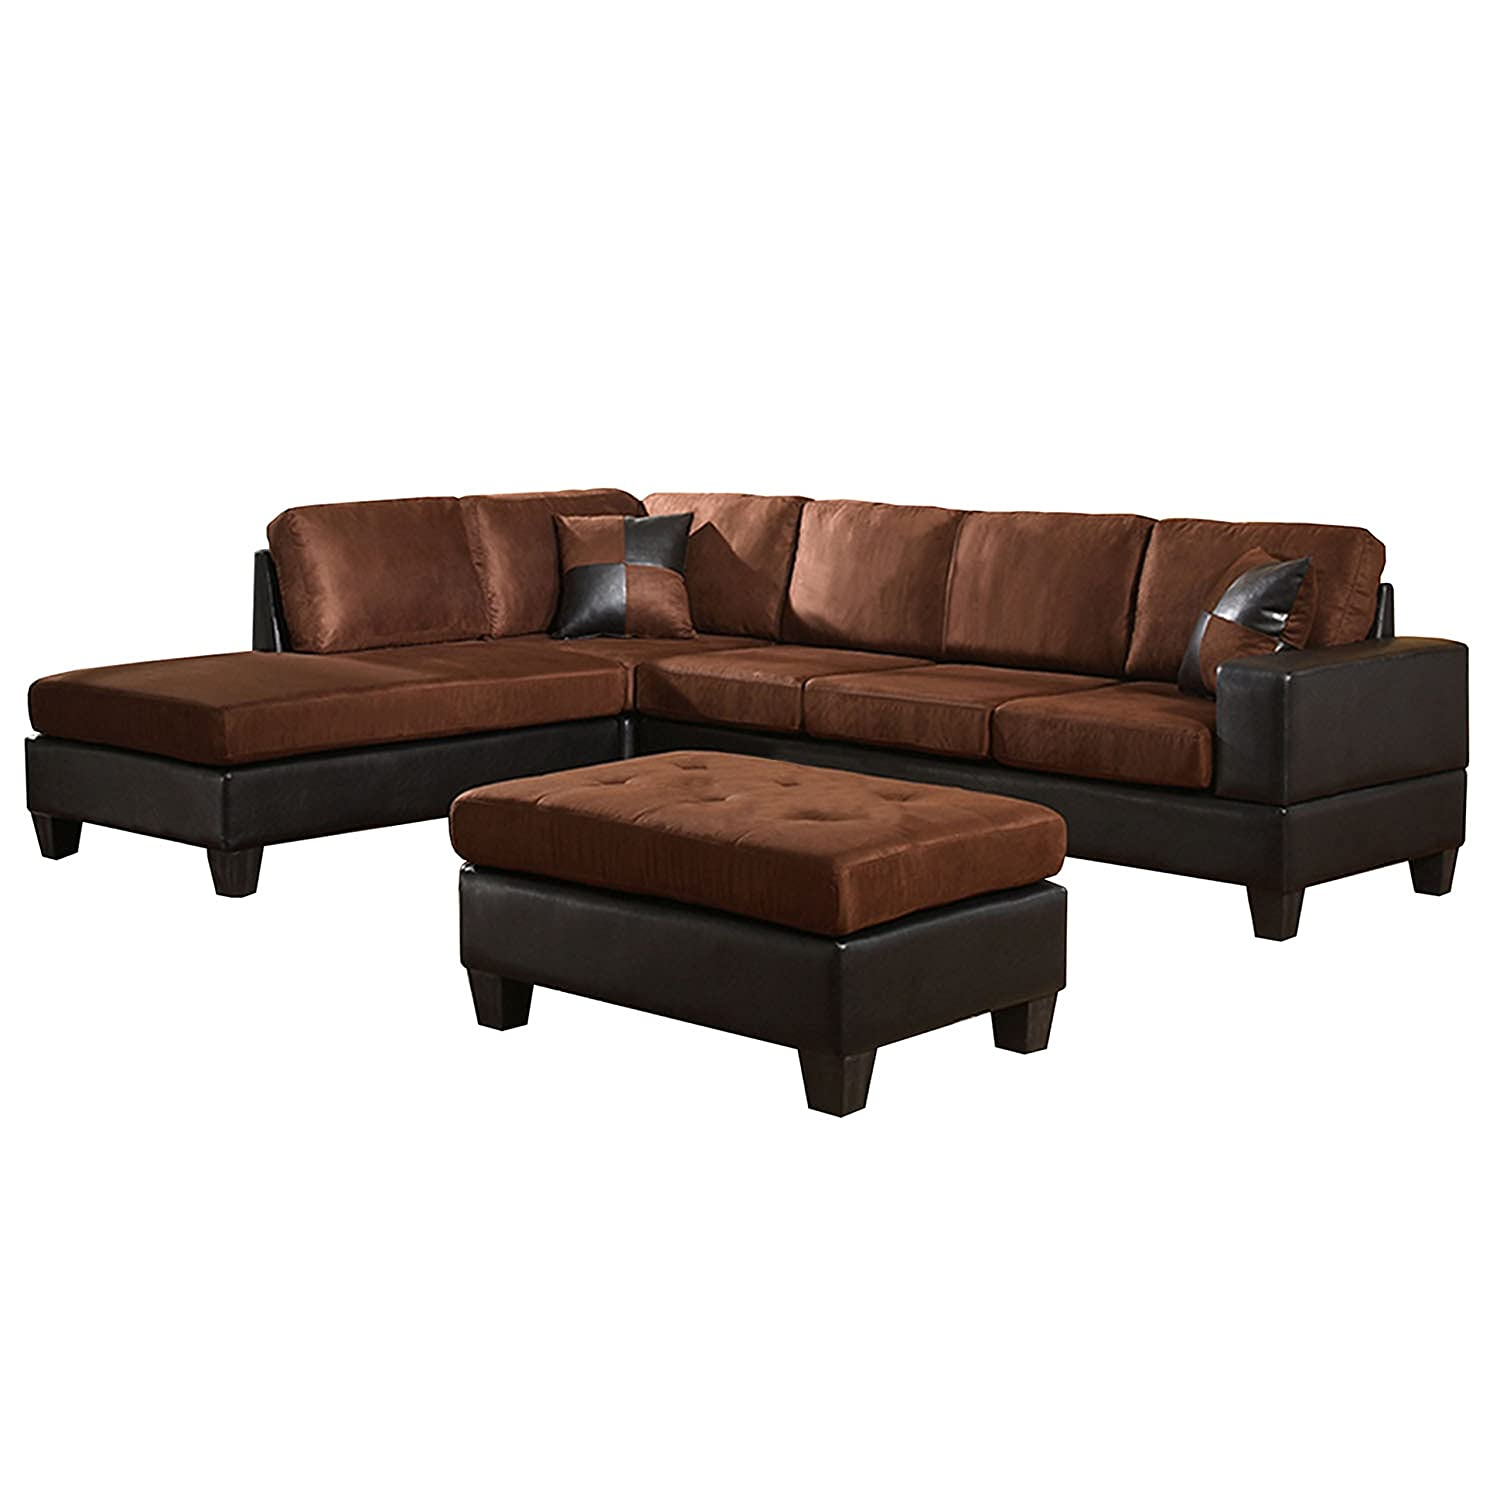 Genial Amazon.com: US Pride Sierra Microfiber Sectional Sofa With Ottoman, Left,  Chocolate Brown: Kitchen U0026 Dining